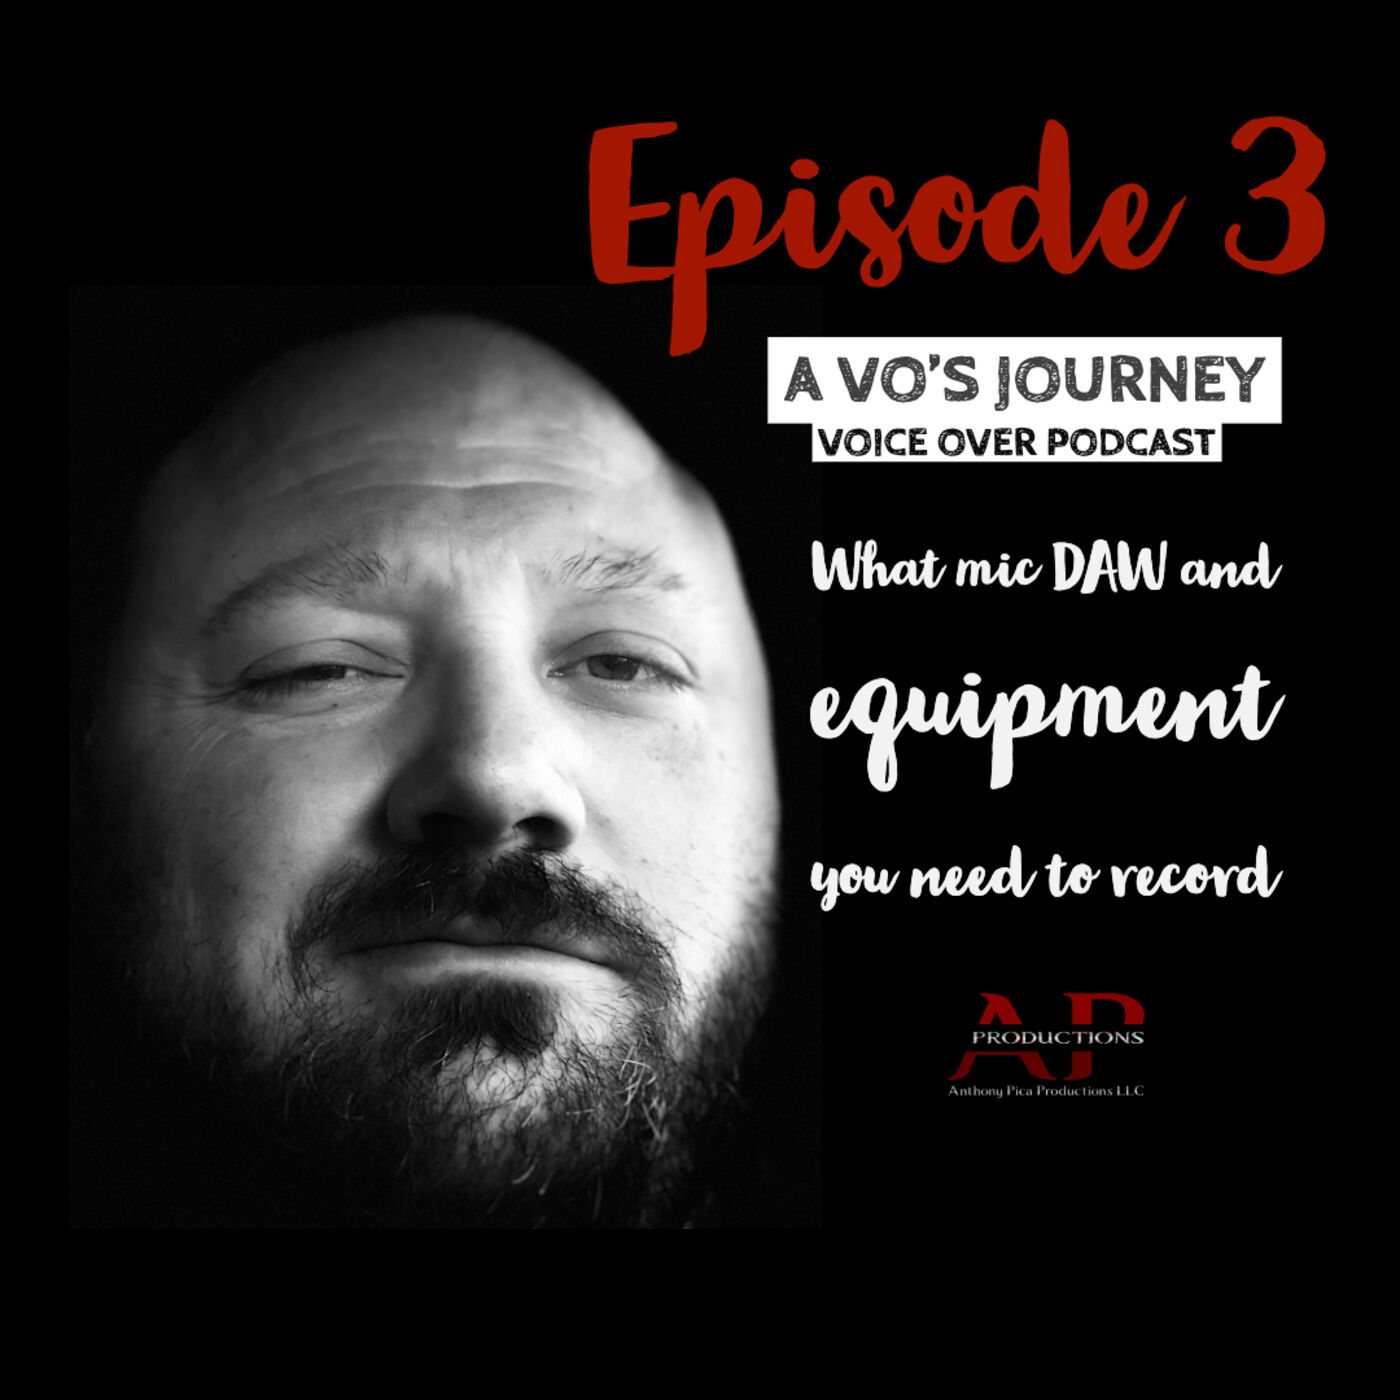 Ep. 3: What mic DAW and equipment you need to record